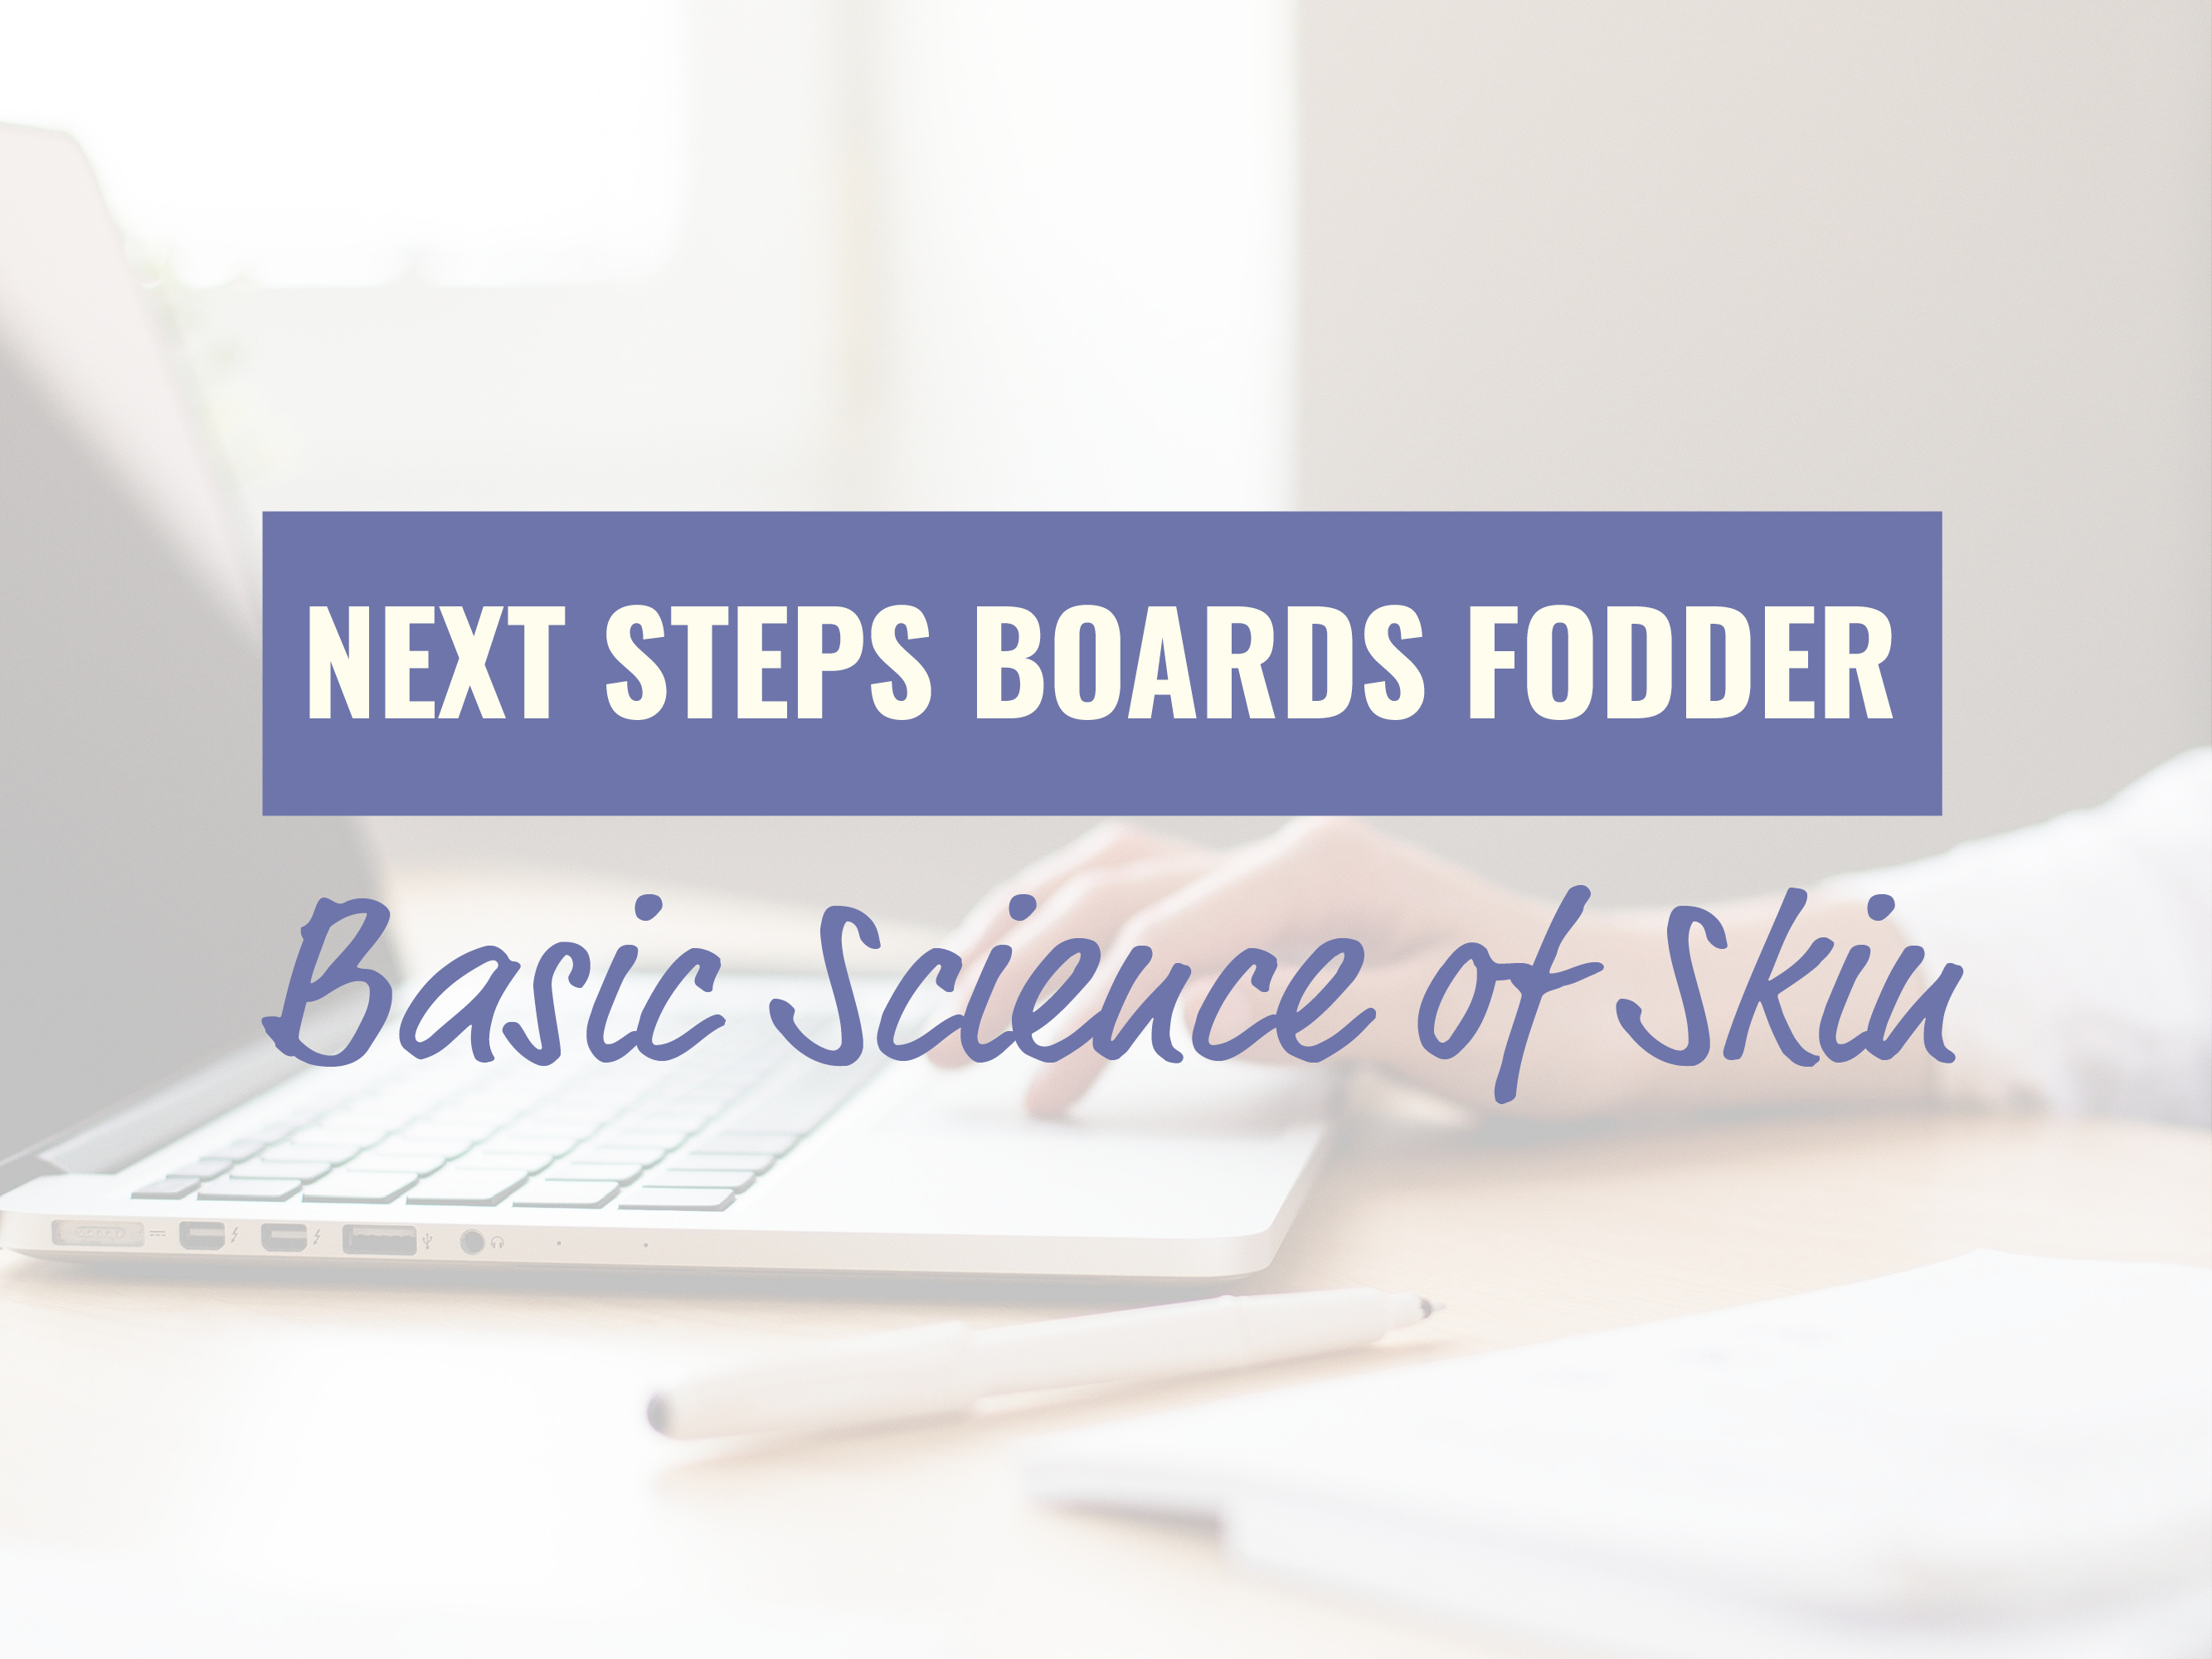 Basic Science of Skin _ Boards Fodder